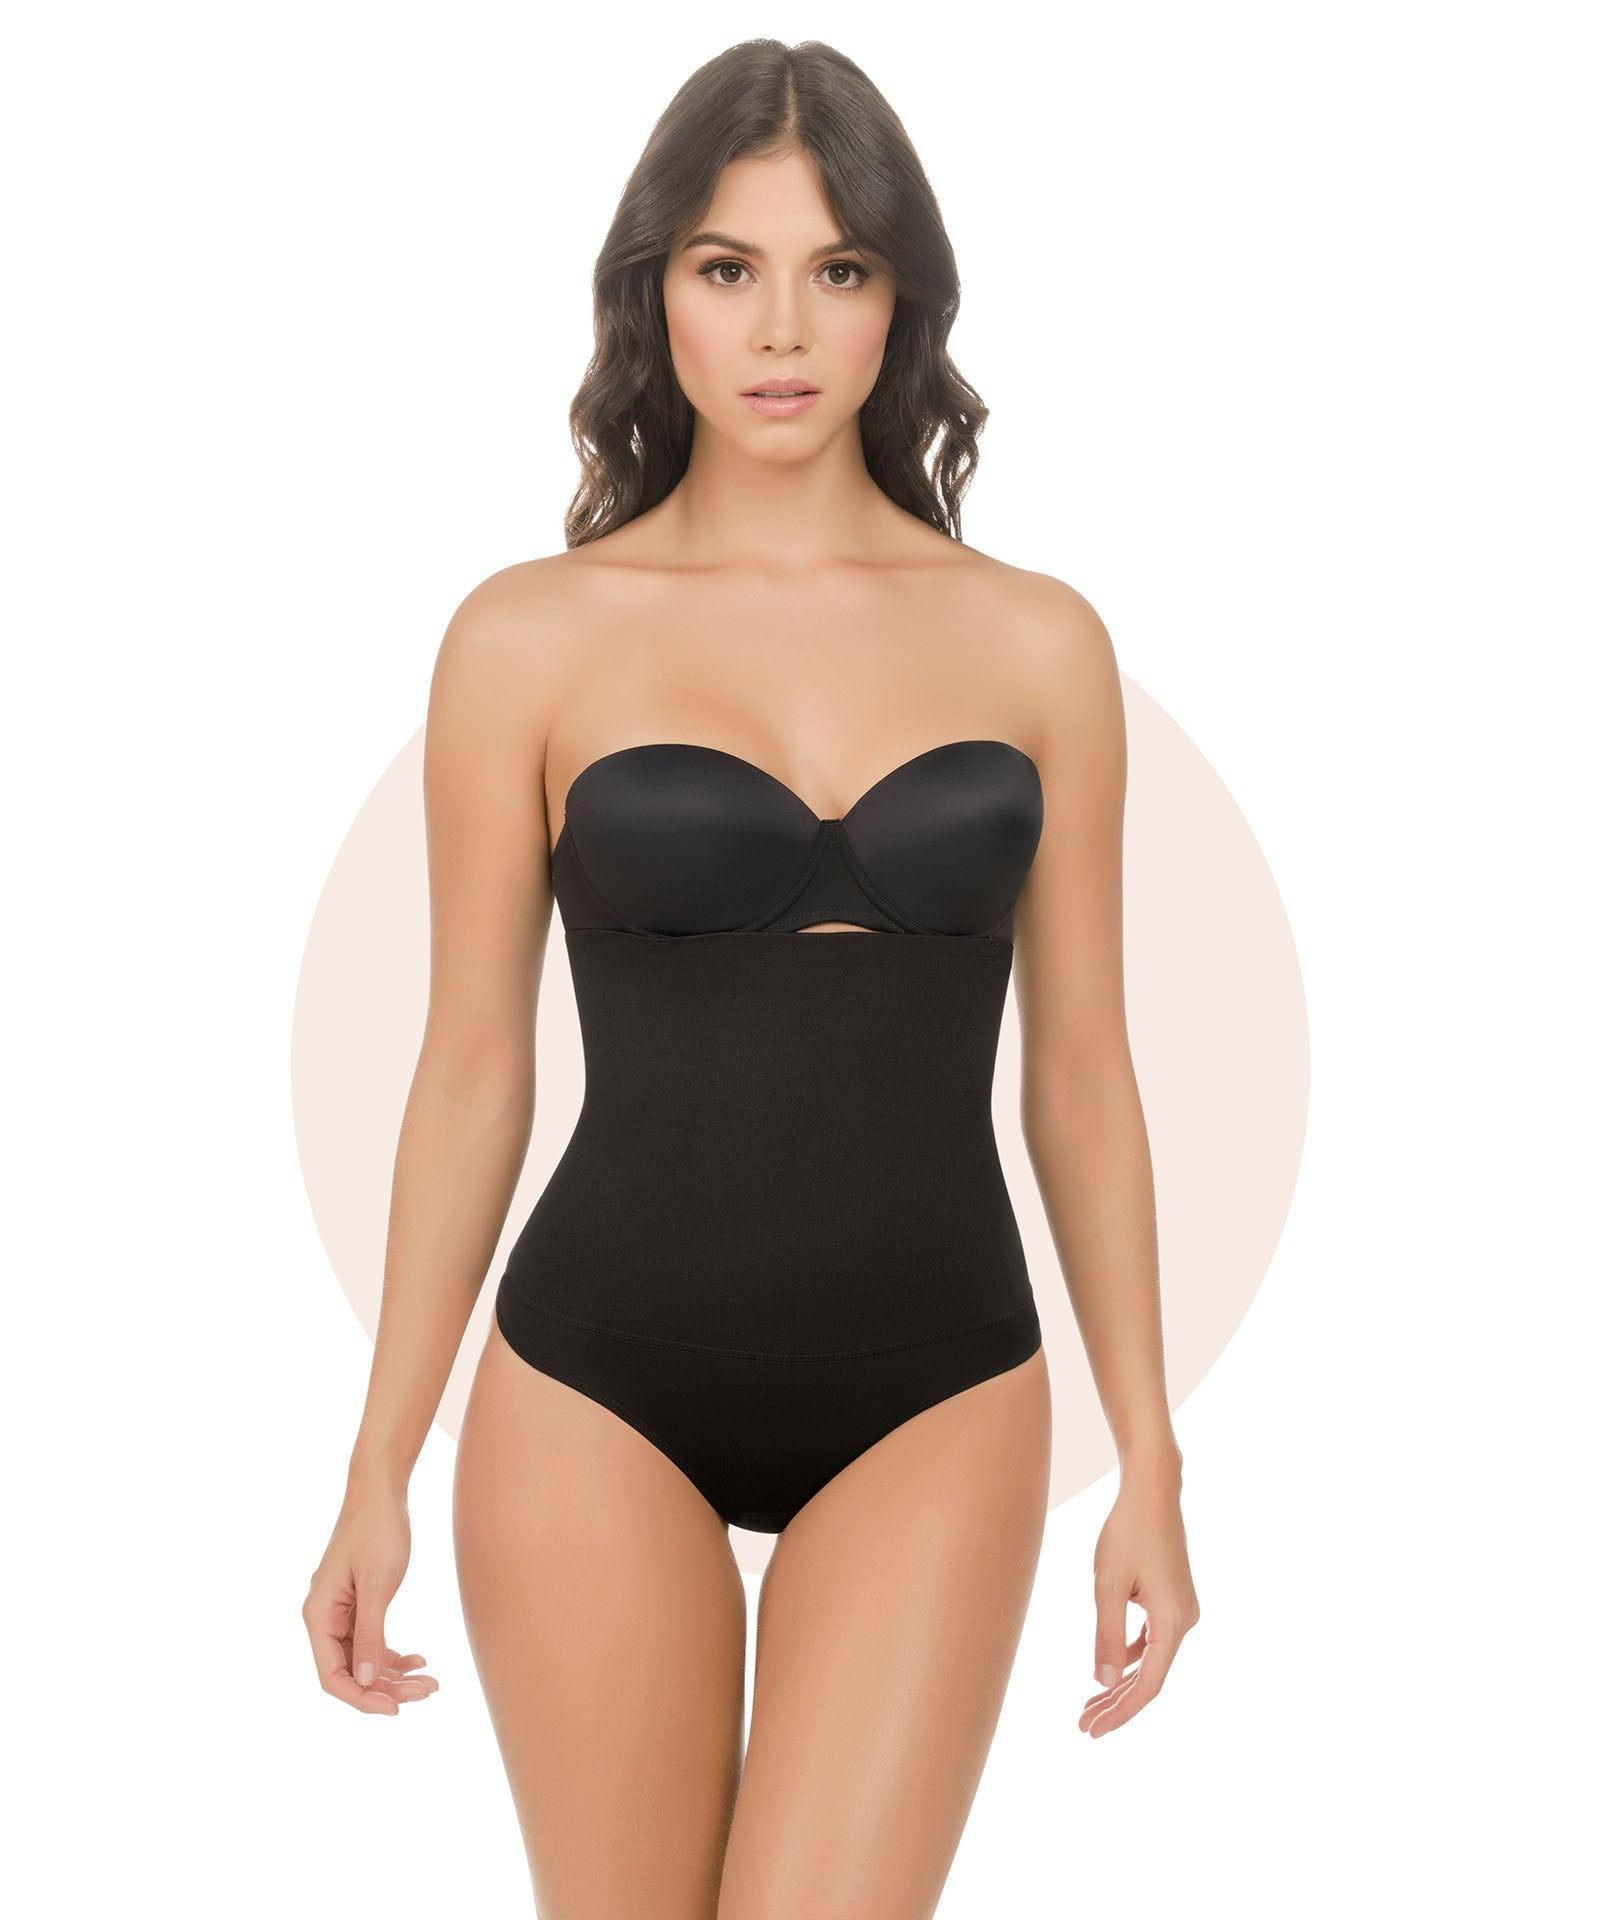 1560 - Strapless Ultra Compression Body Shaper